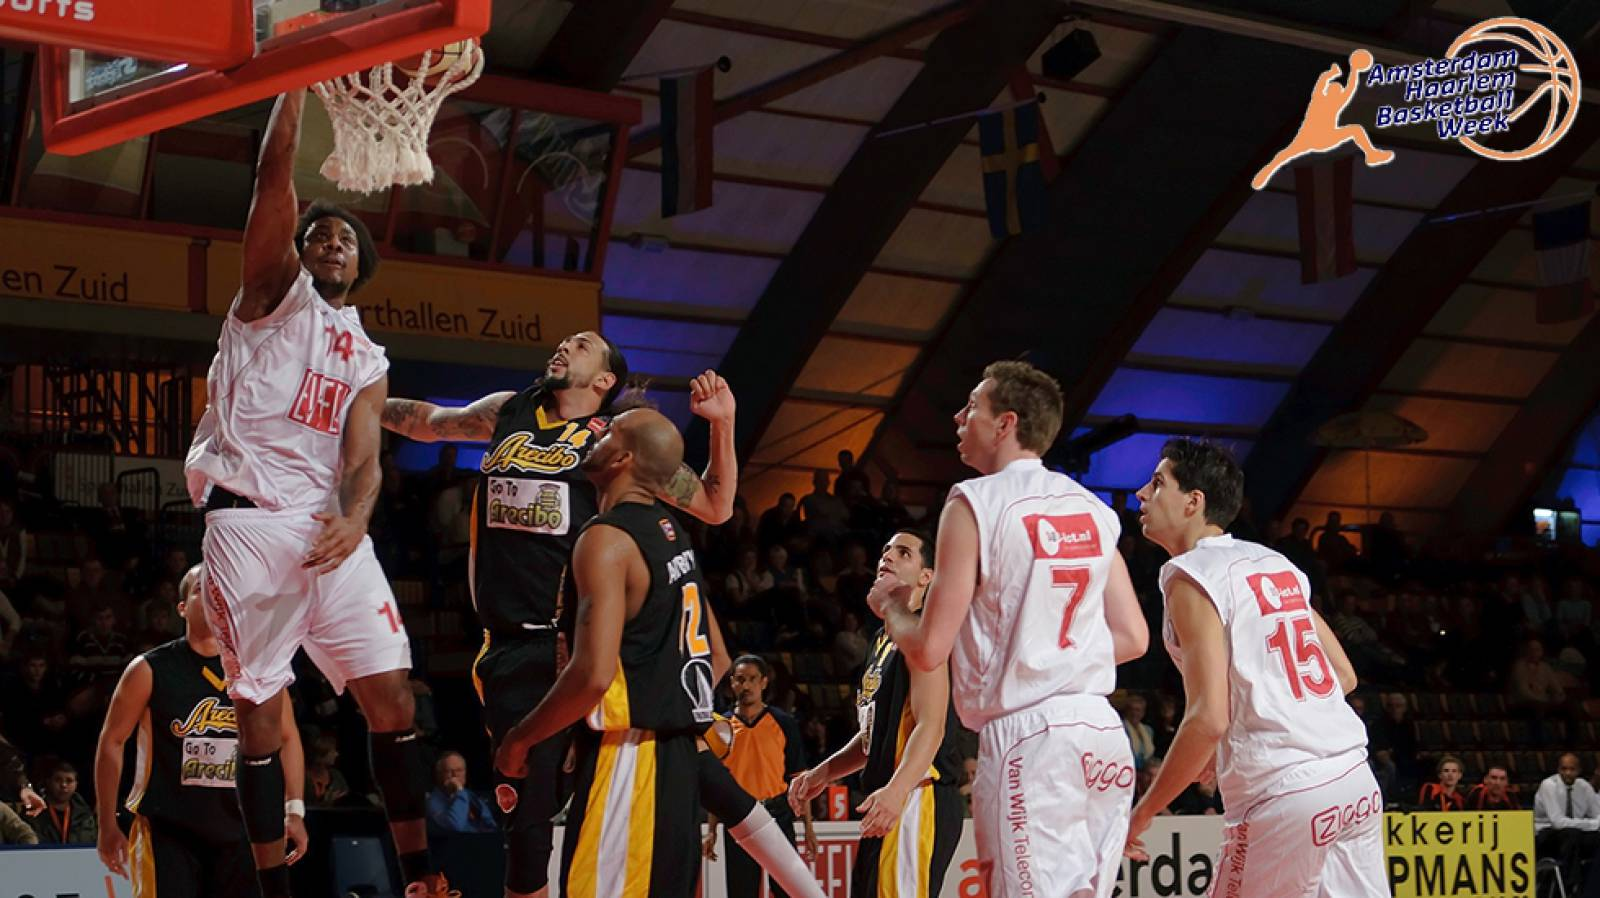 23rd Amsterdam Haarlem Basketball Week